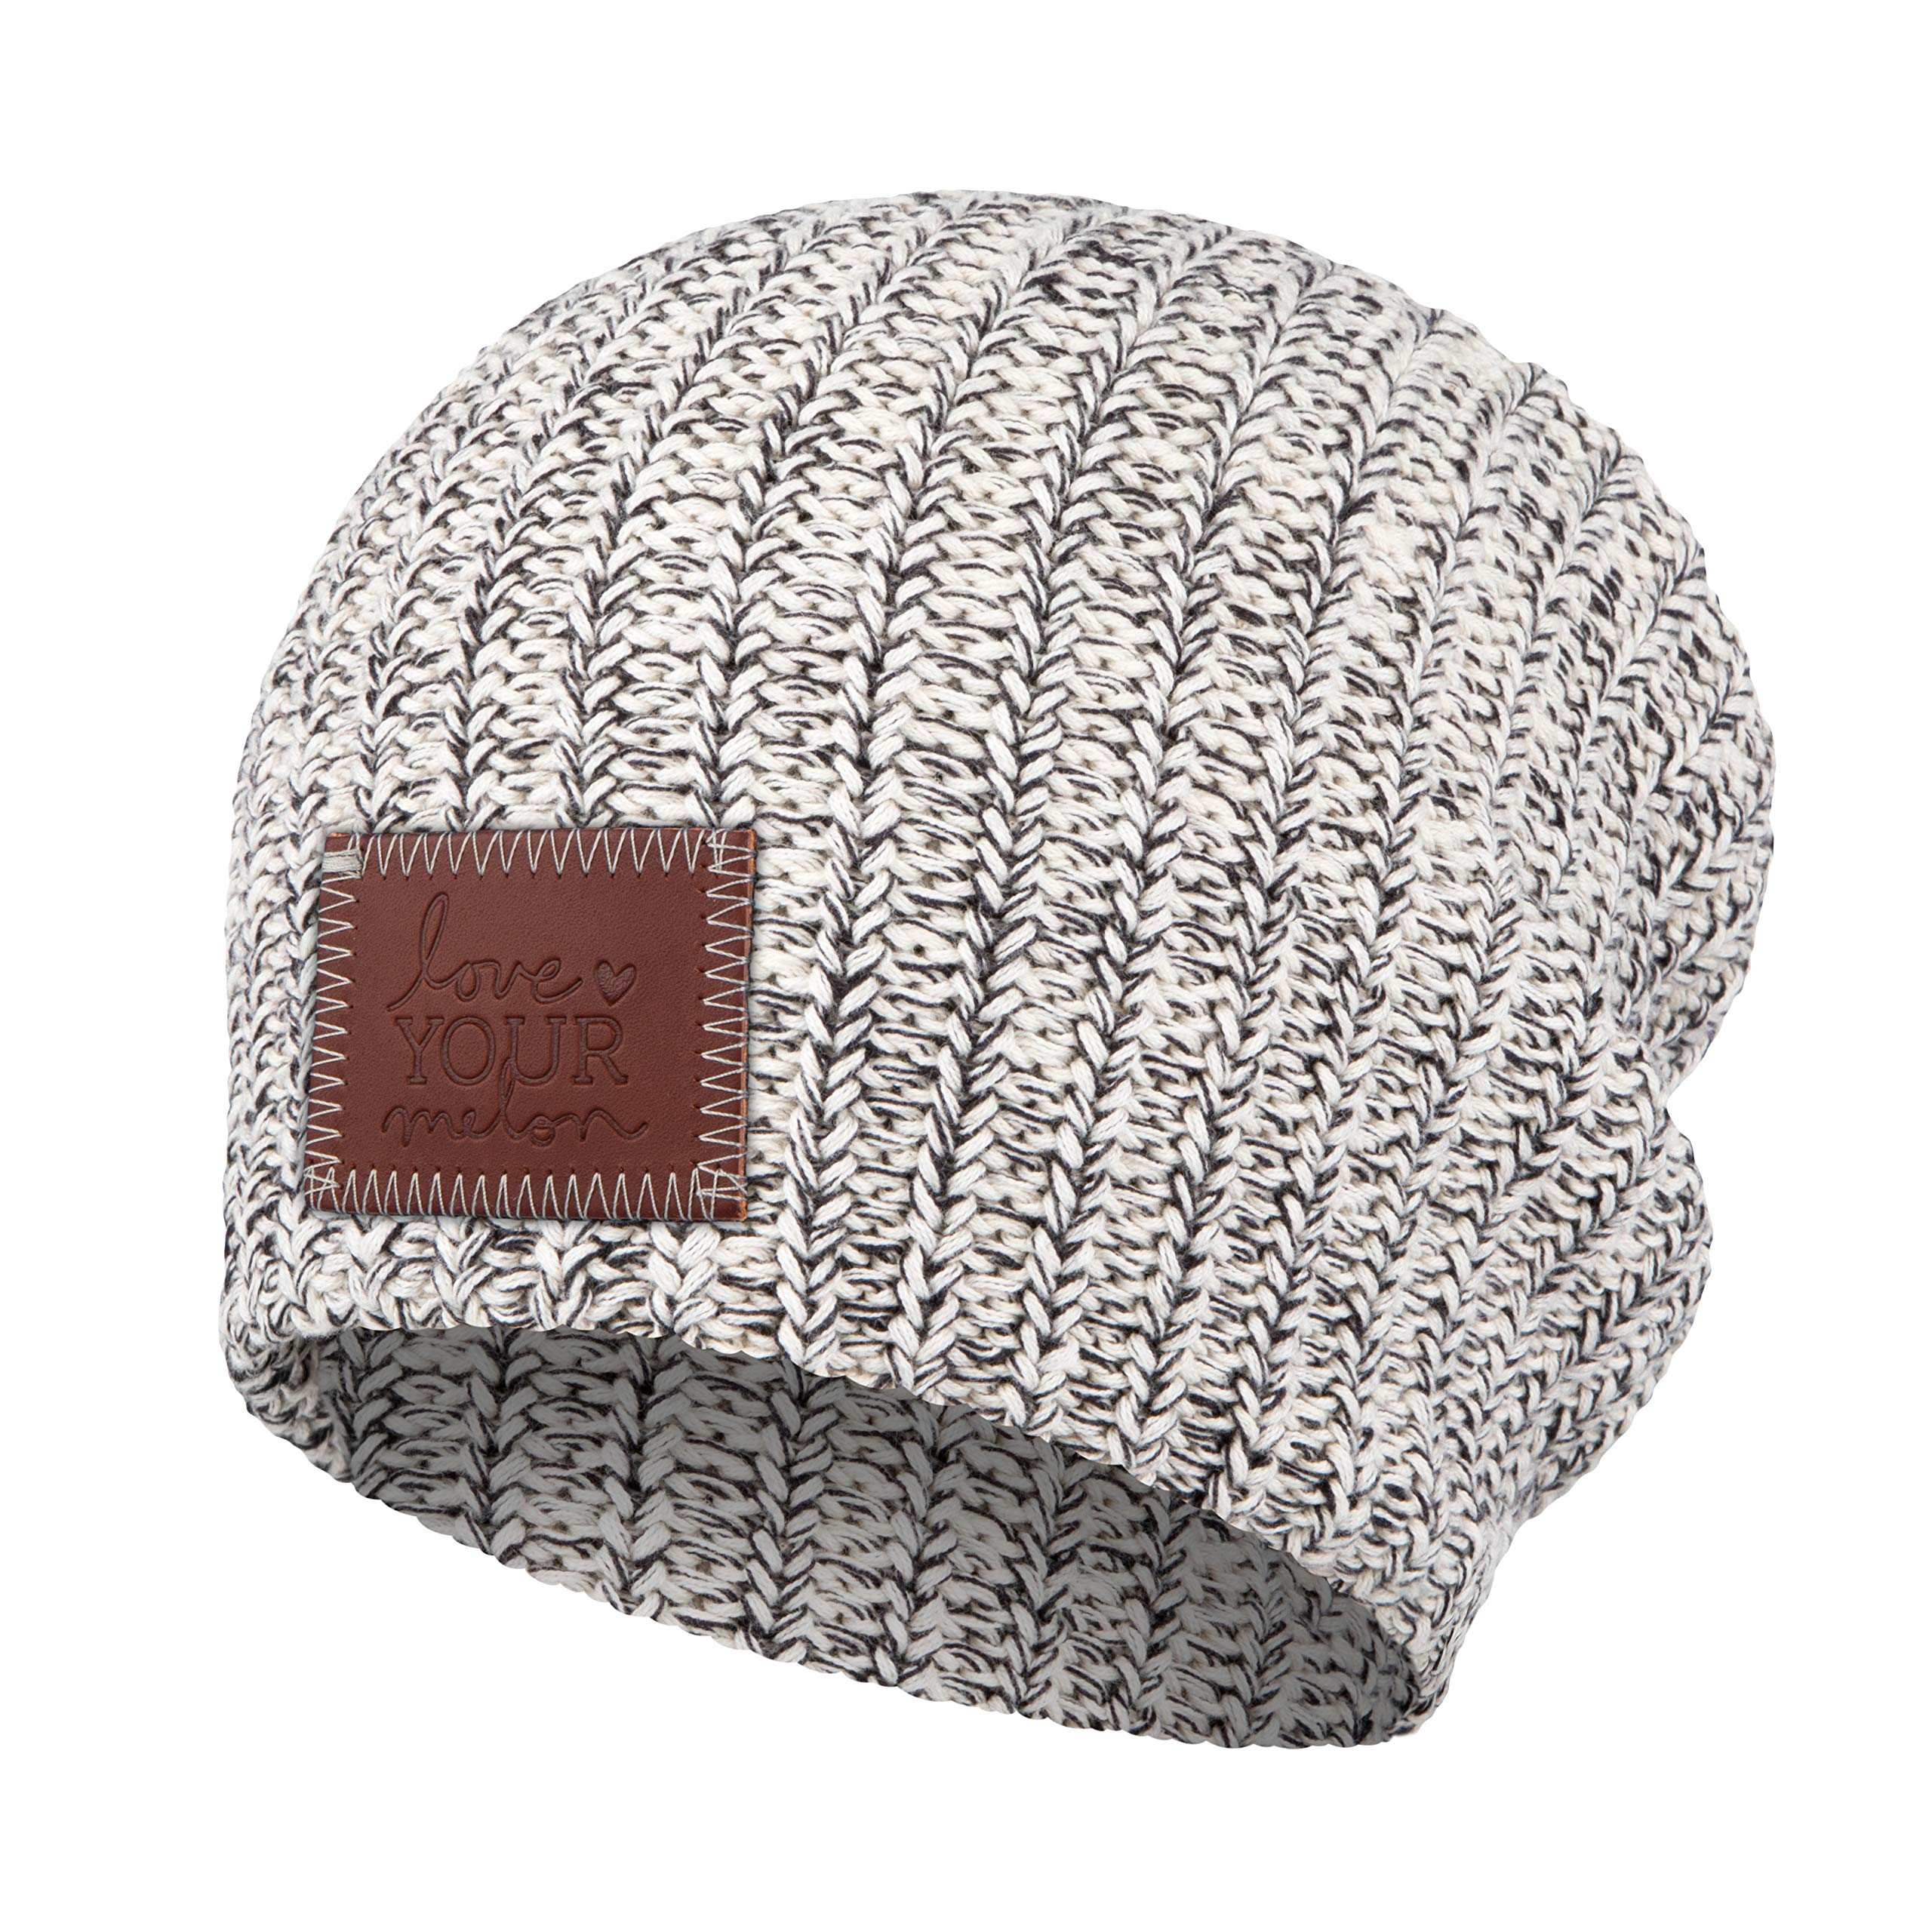 Love Your Melon Black Speckled Beanie by Love Your Melon (Image #2)